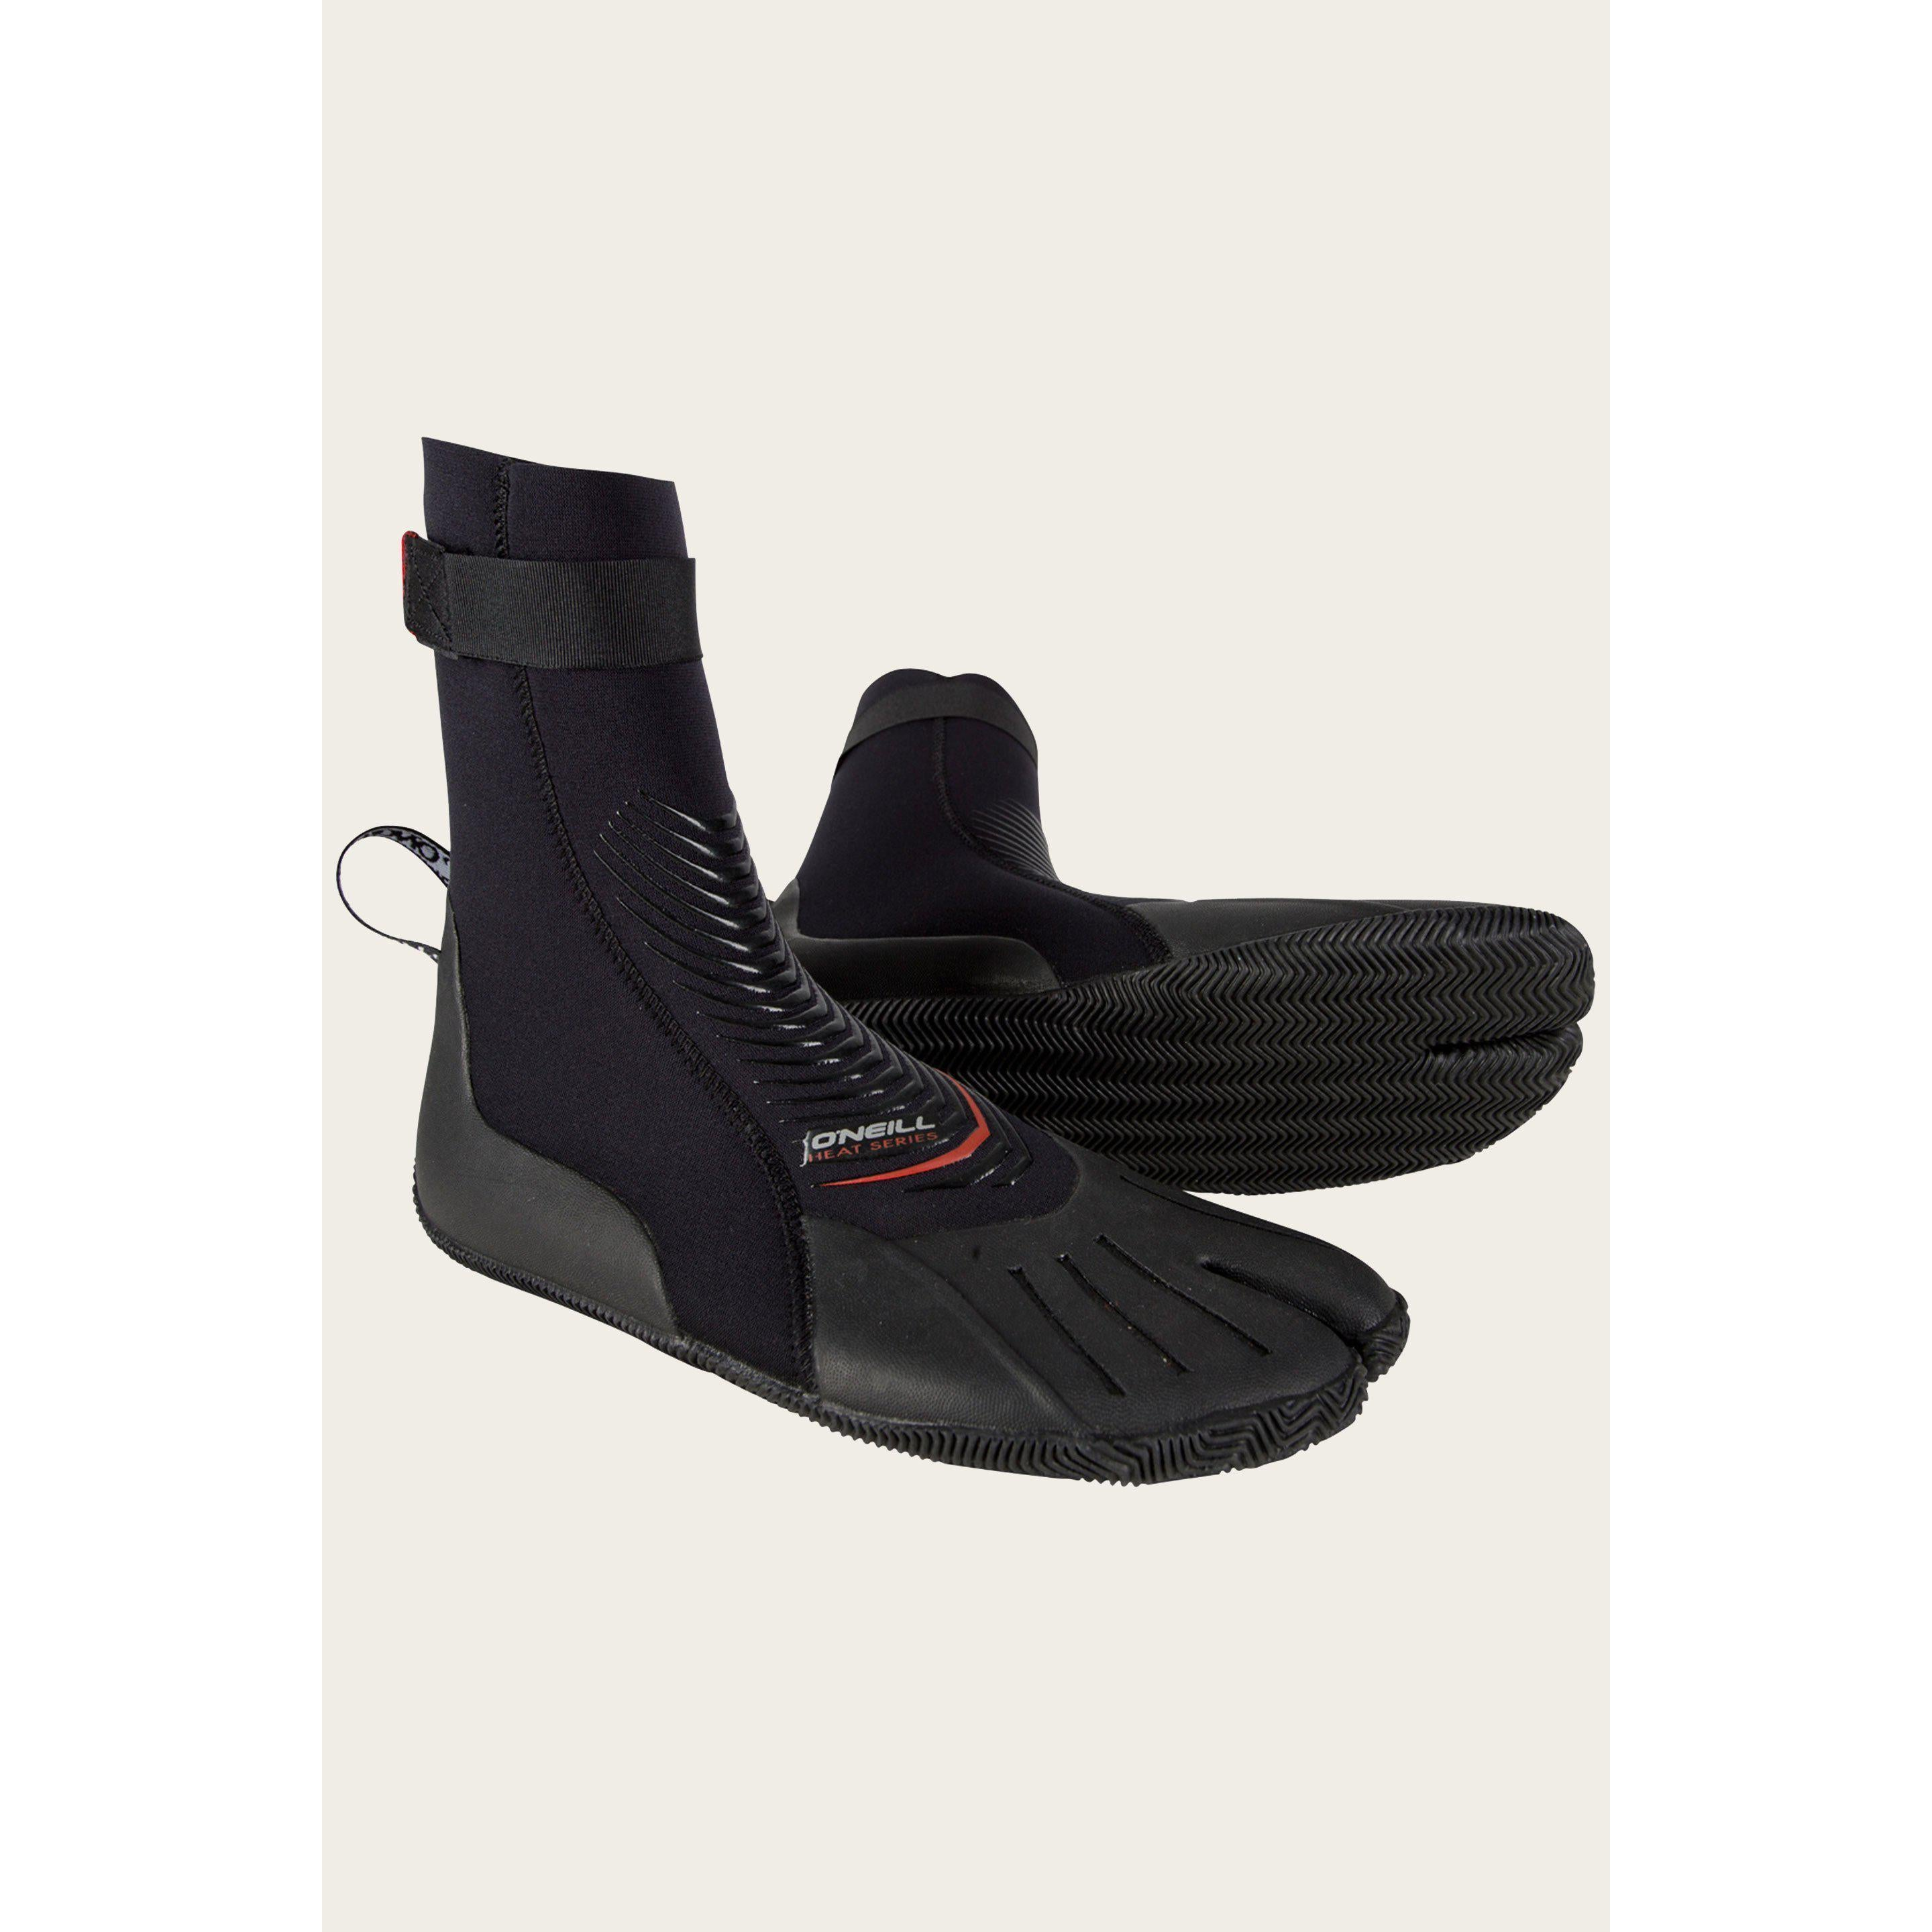 O'NEILL HEAT ST 3MM BOOT-Big Winds